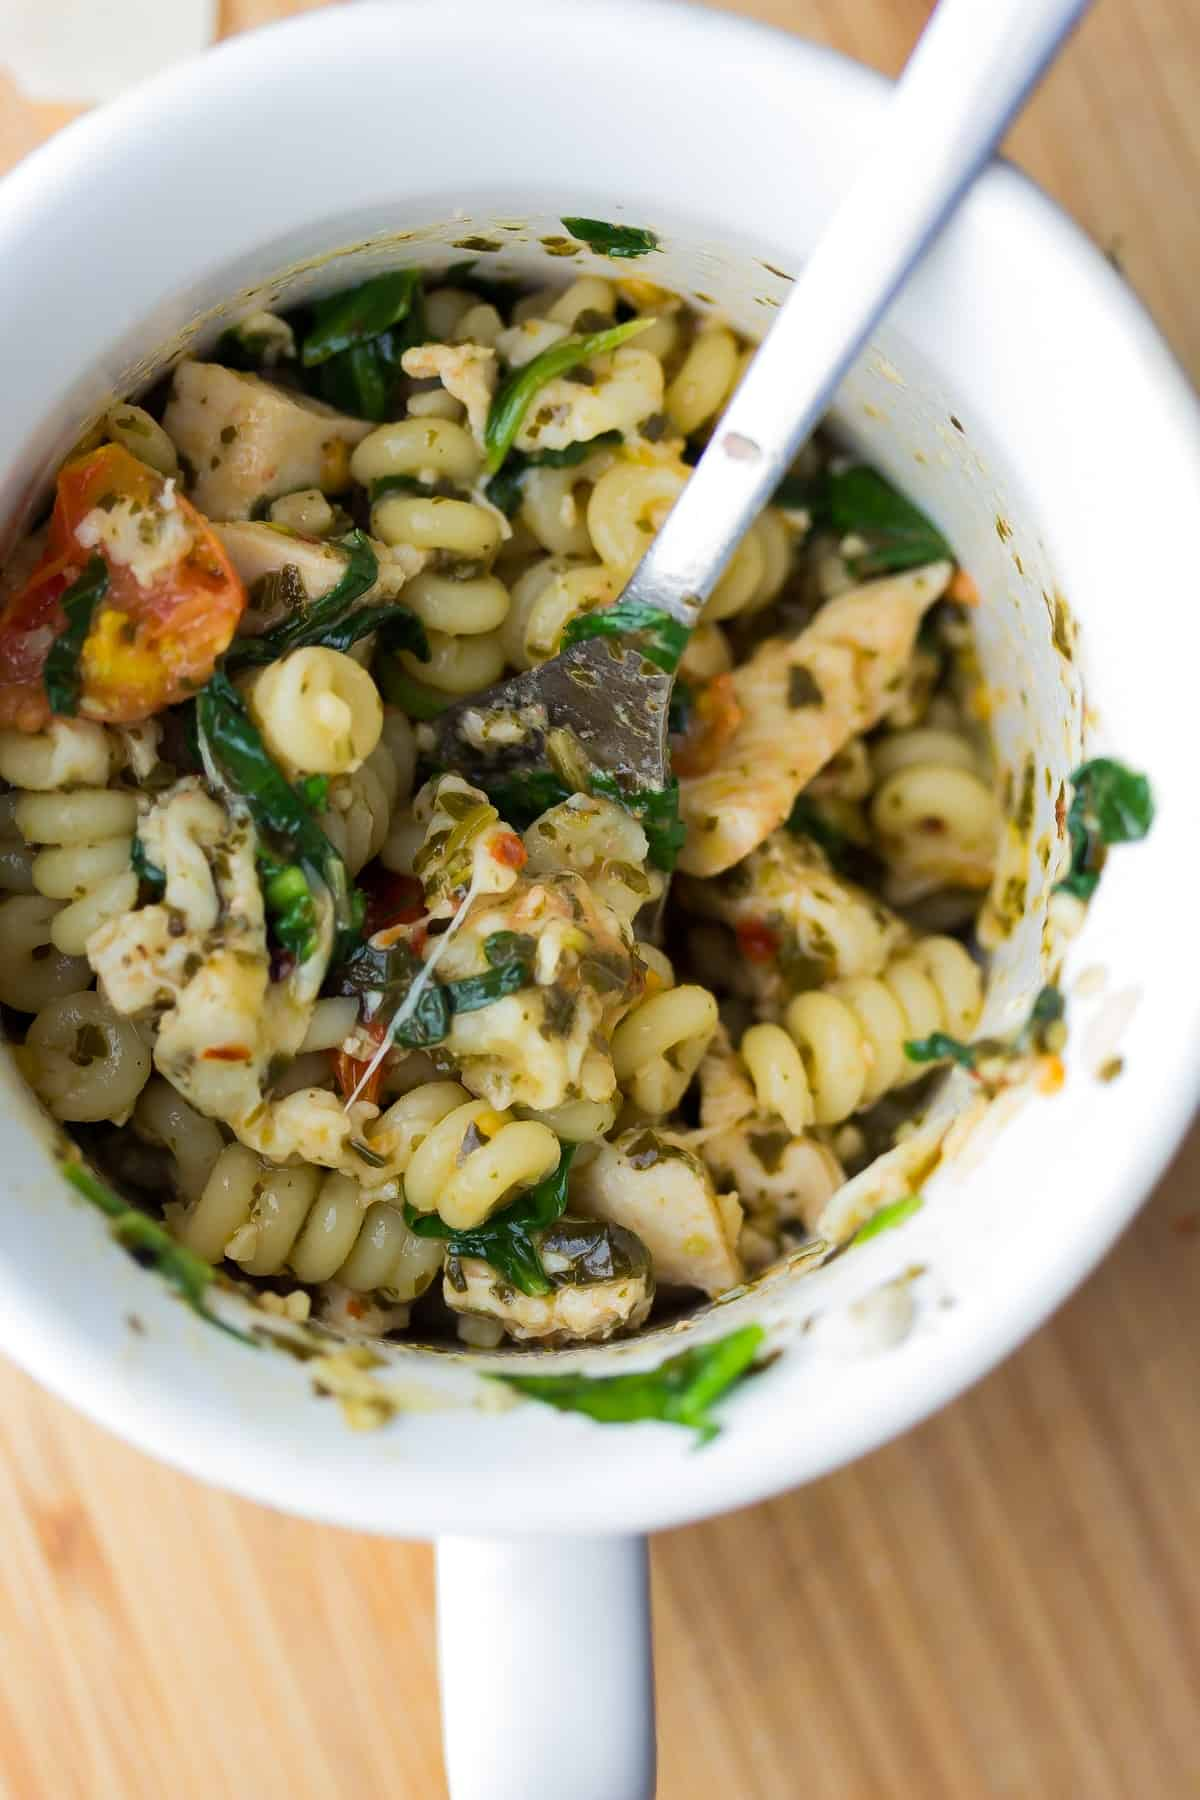 This Pesto En Mug Pasta Cooks Up In The Microwave Under 10 Minutes For An